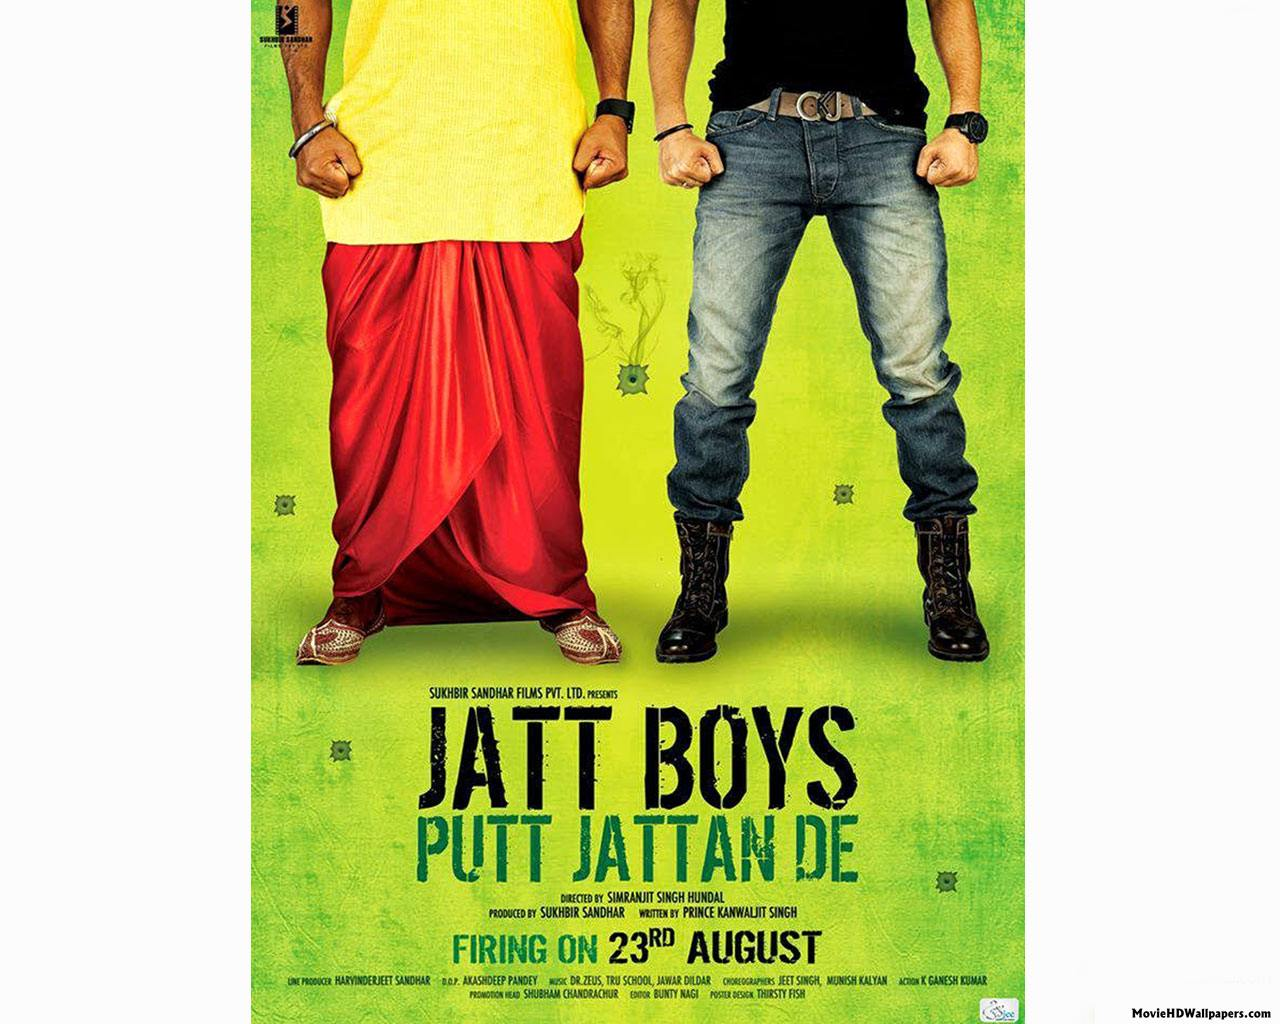 Wallpaper download jat -  Jatt Boys Putt Jattan De Hd Poster Movie Hd Wallpapers